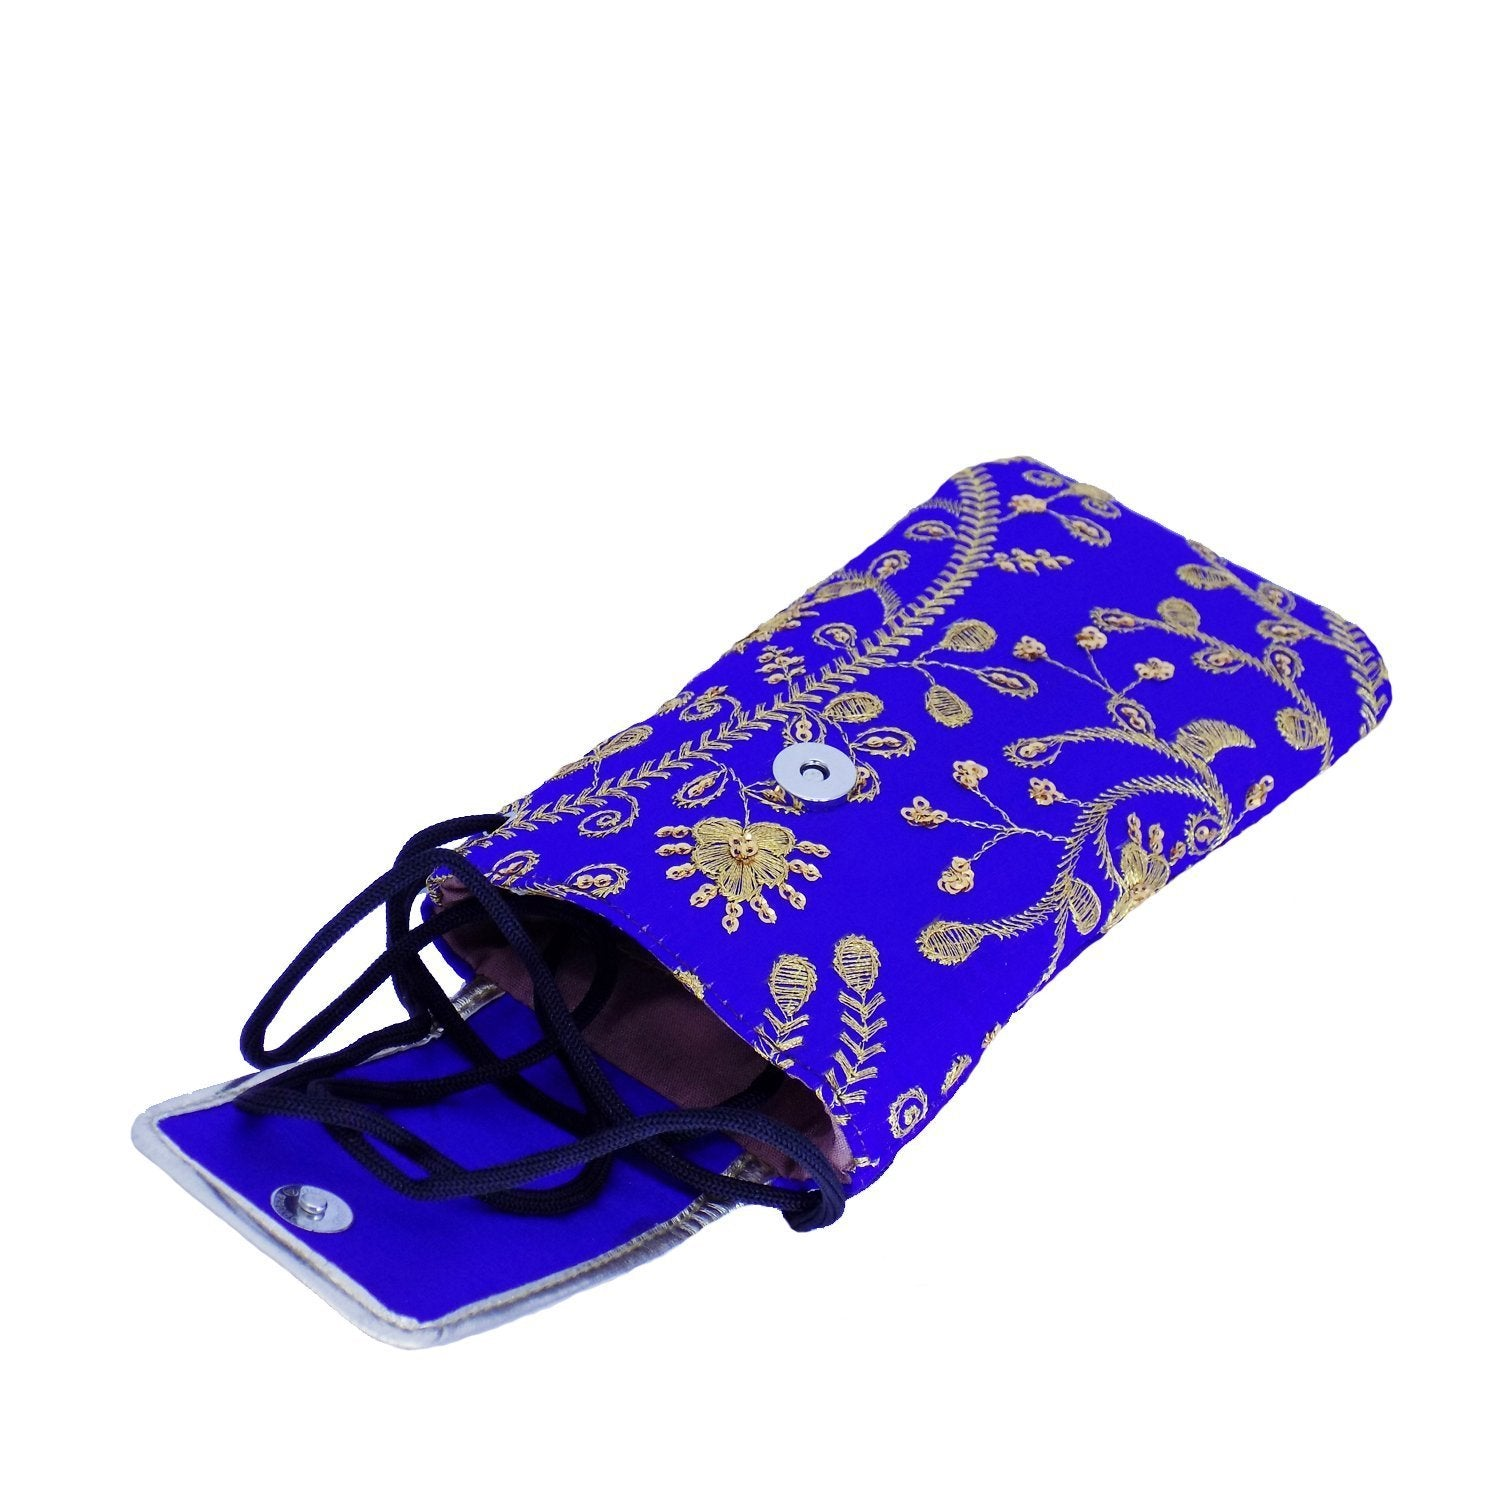 Raw Silk Mobile Pouch Waist Clip - Bagaholics Gift